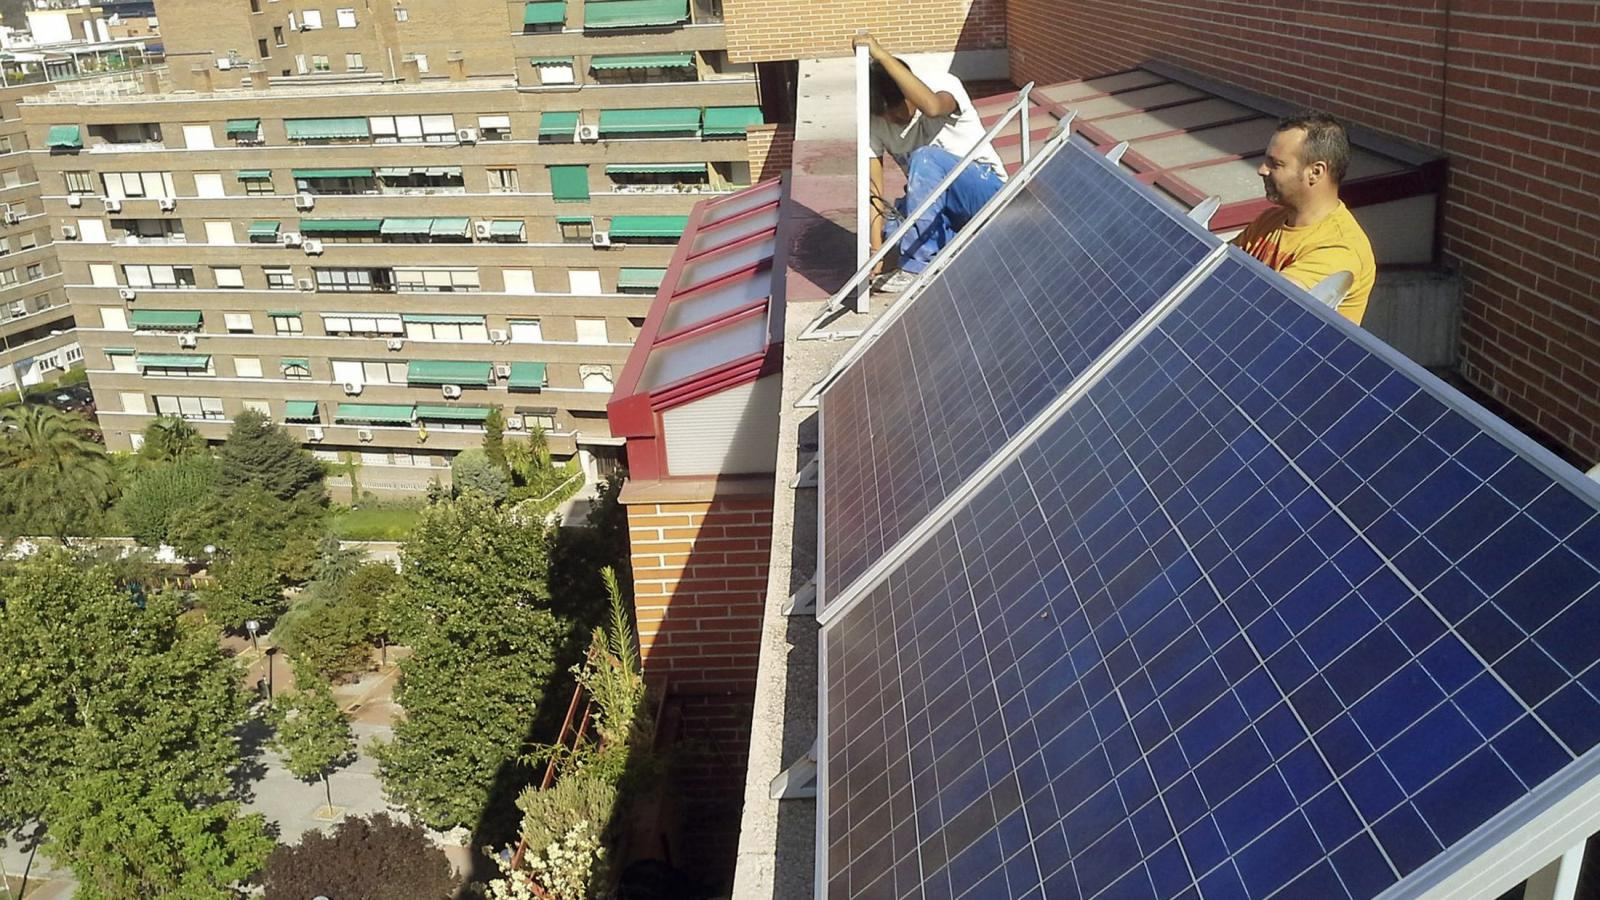 Smappees Solarcoin Scheme Firms Are Testing Blockchain Tech With Solar Energy Diagram How Does It Work Panels And Wind Generation Quartz